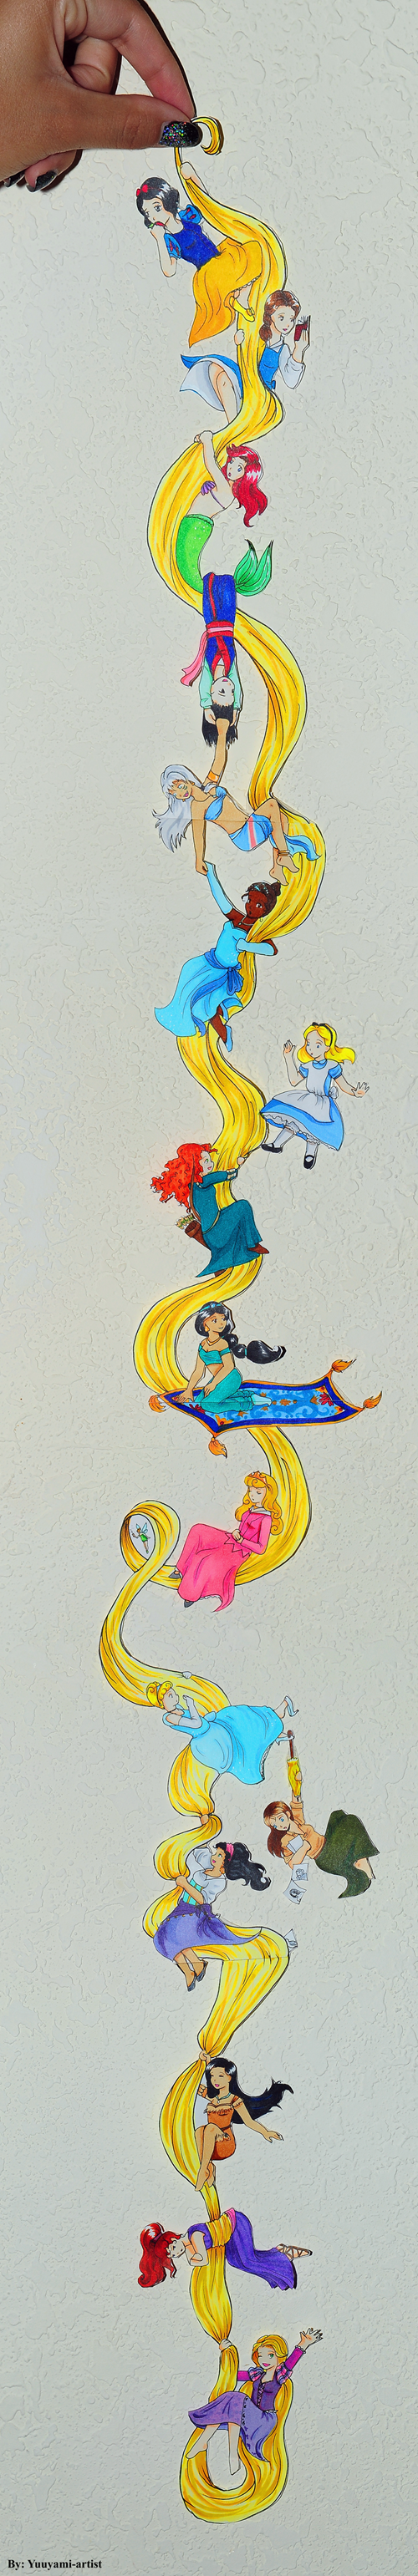 hair disney disney princesses Fan Art - 8284824832